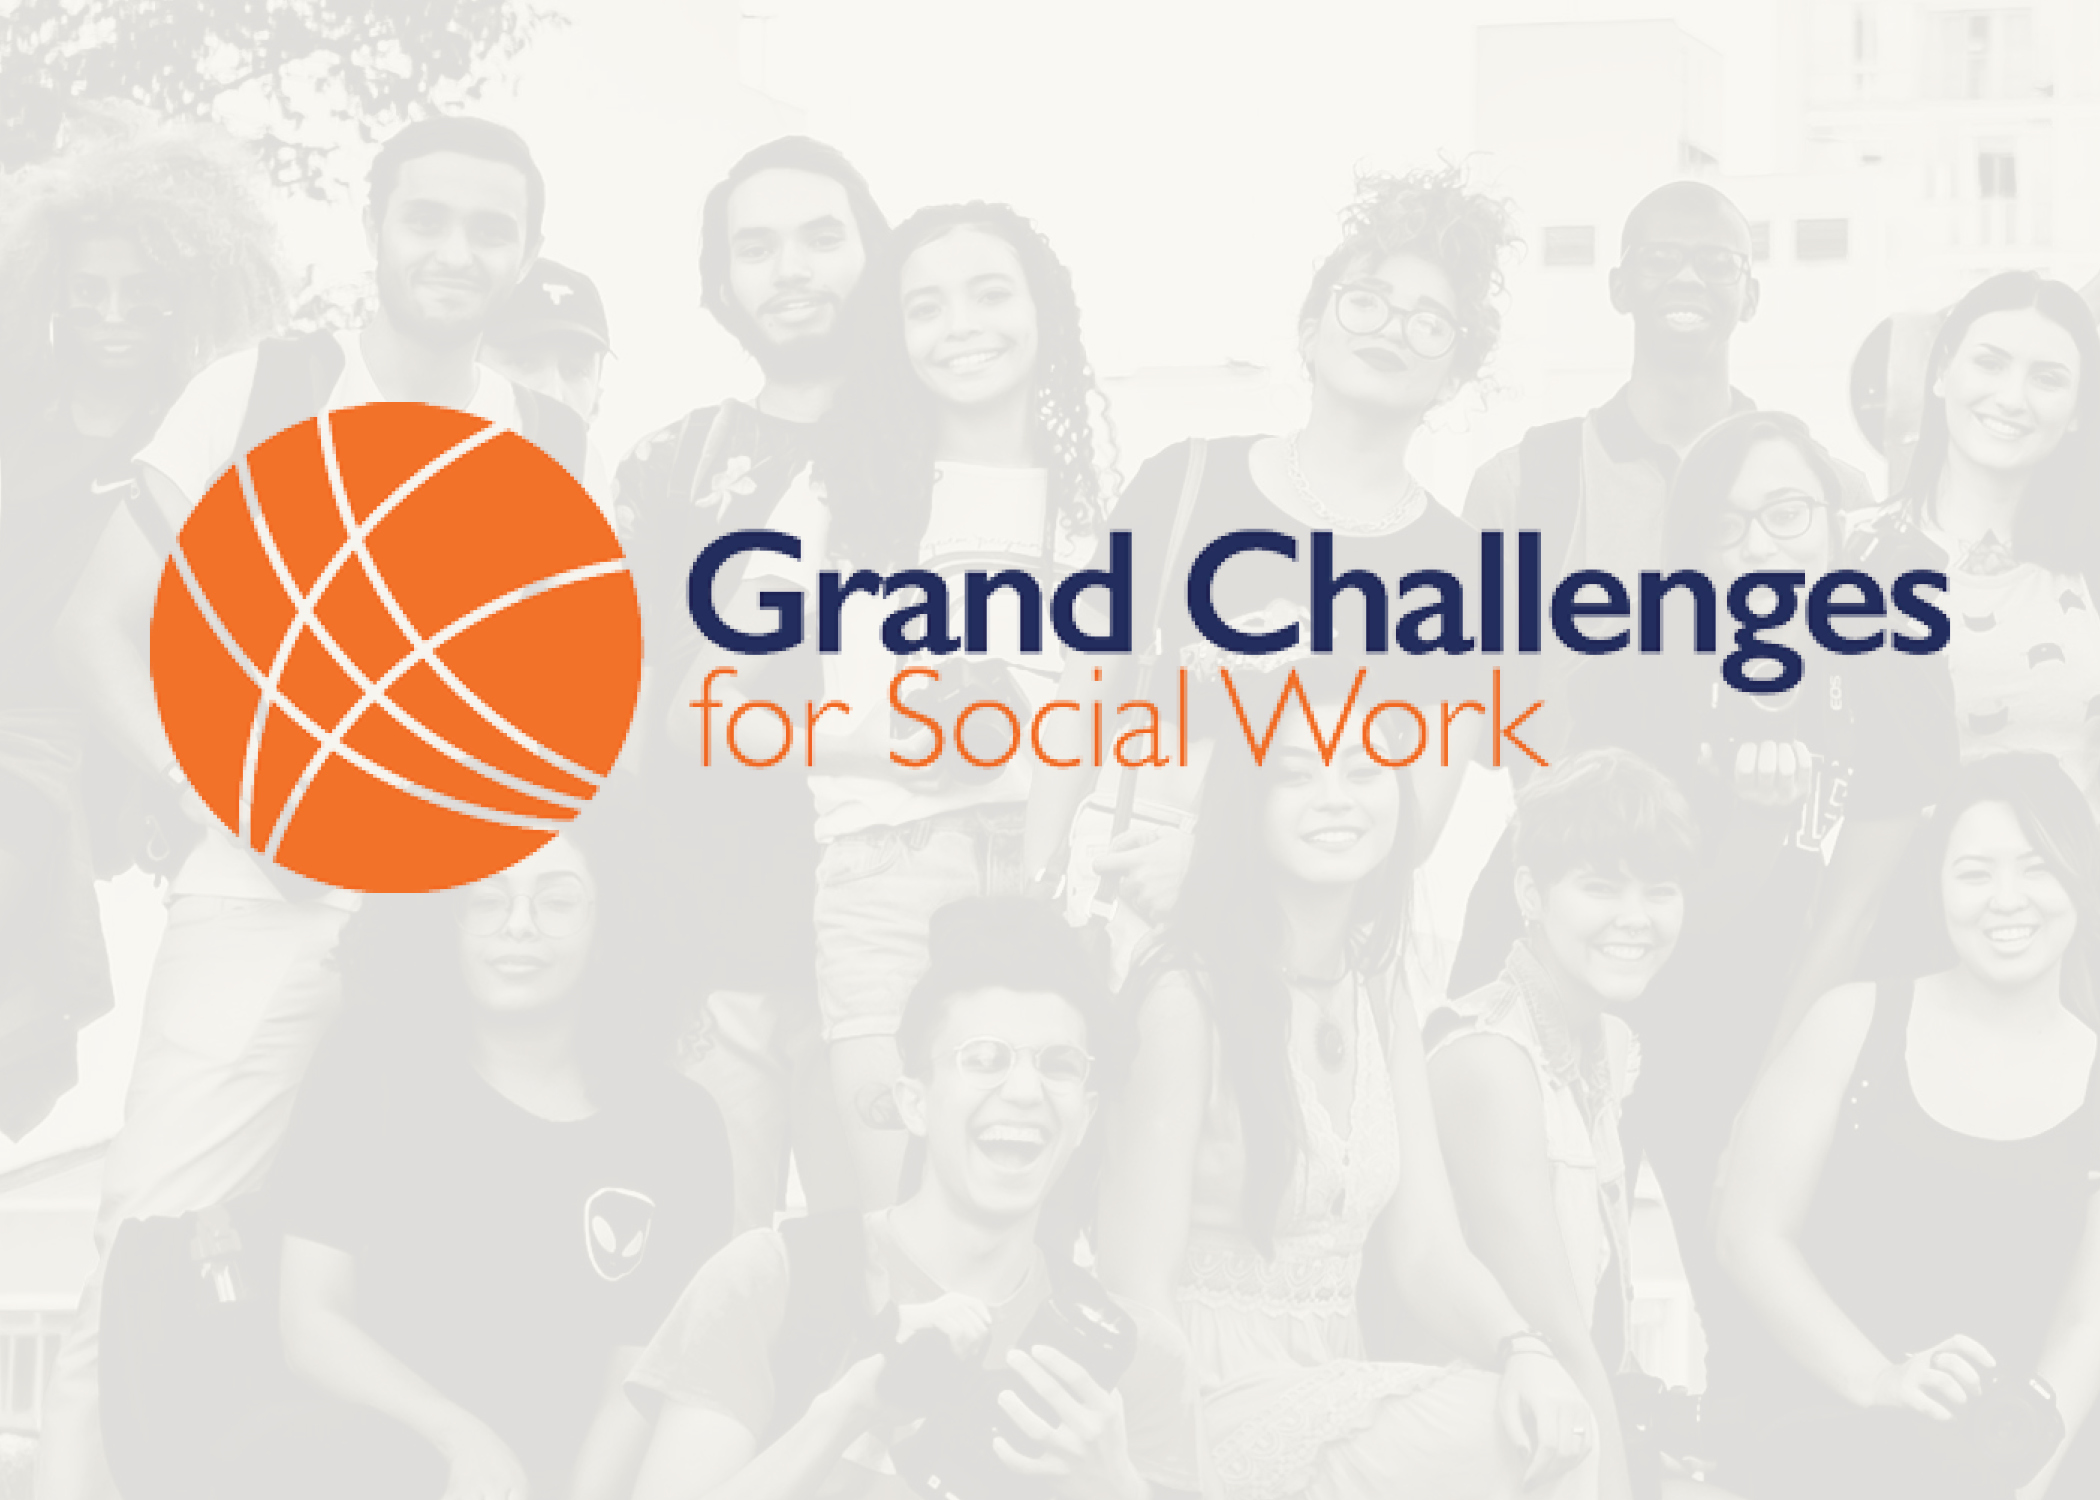 The Grand Challenges for Social Work logo on top of a faint image of smiling people